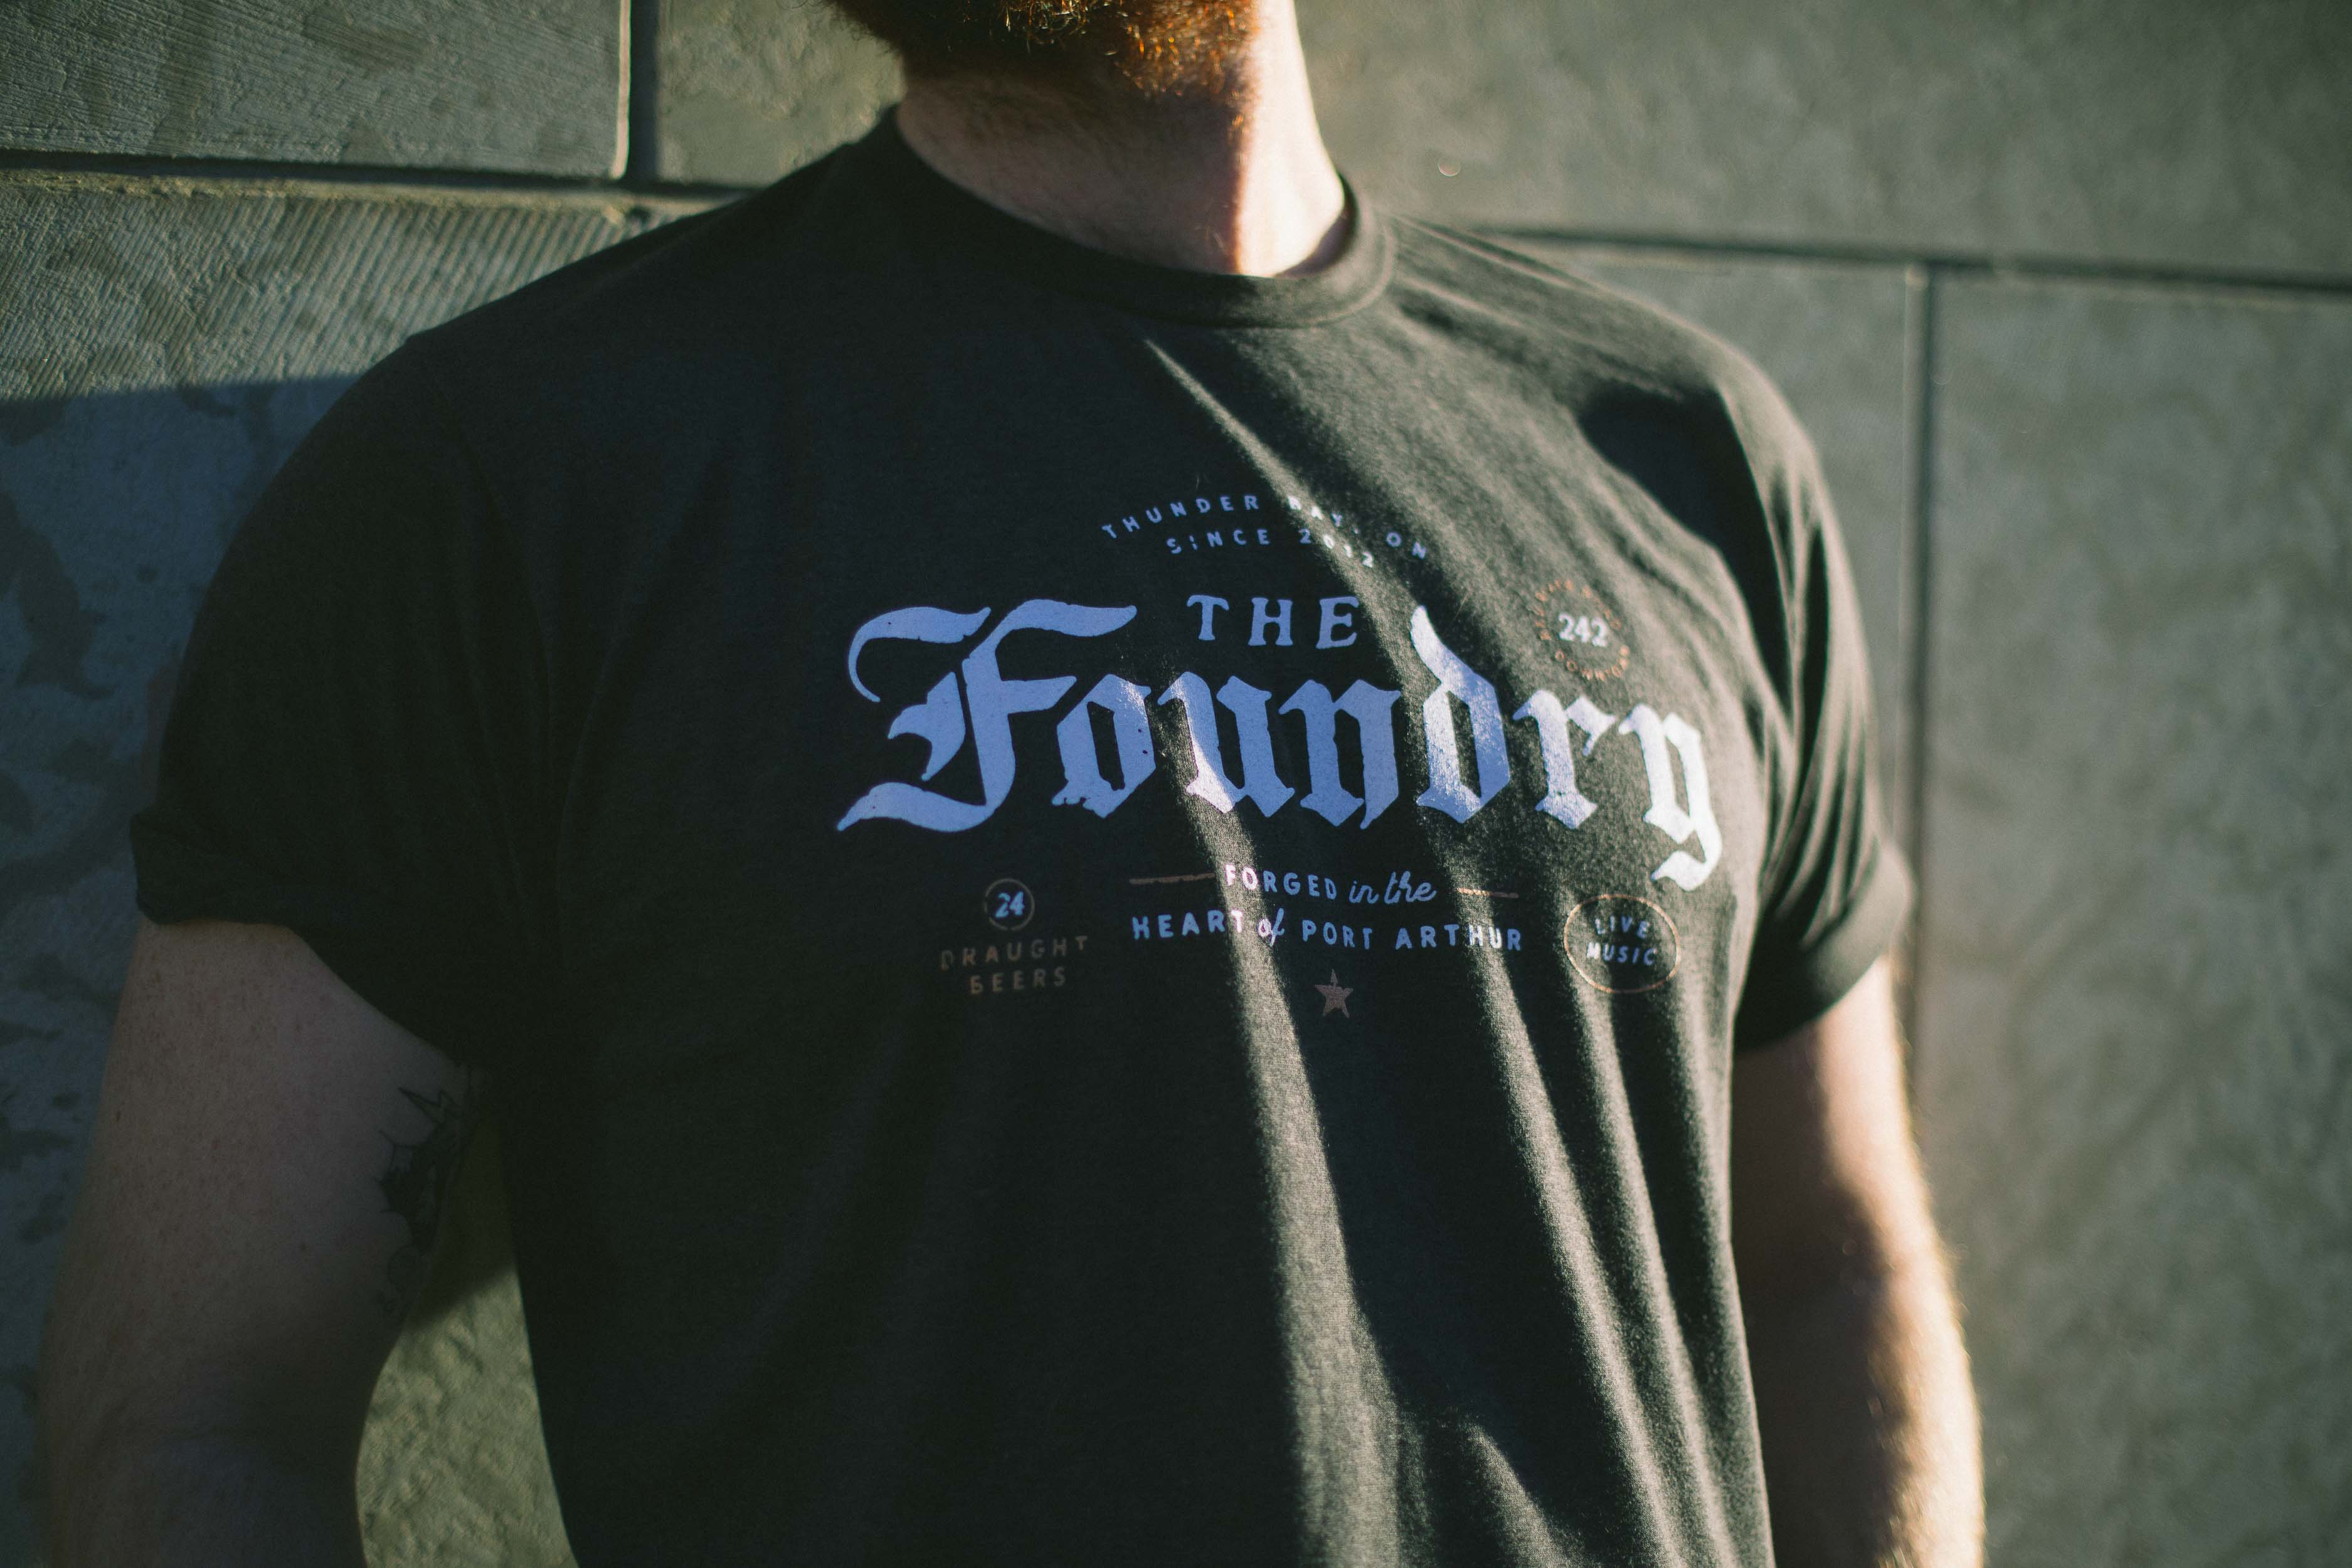 Foundry Tee's designed by Heavy Sleeper Co